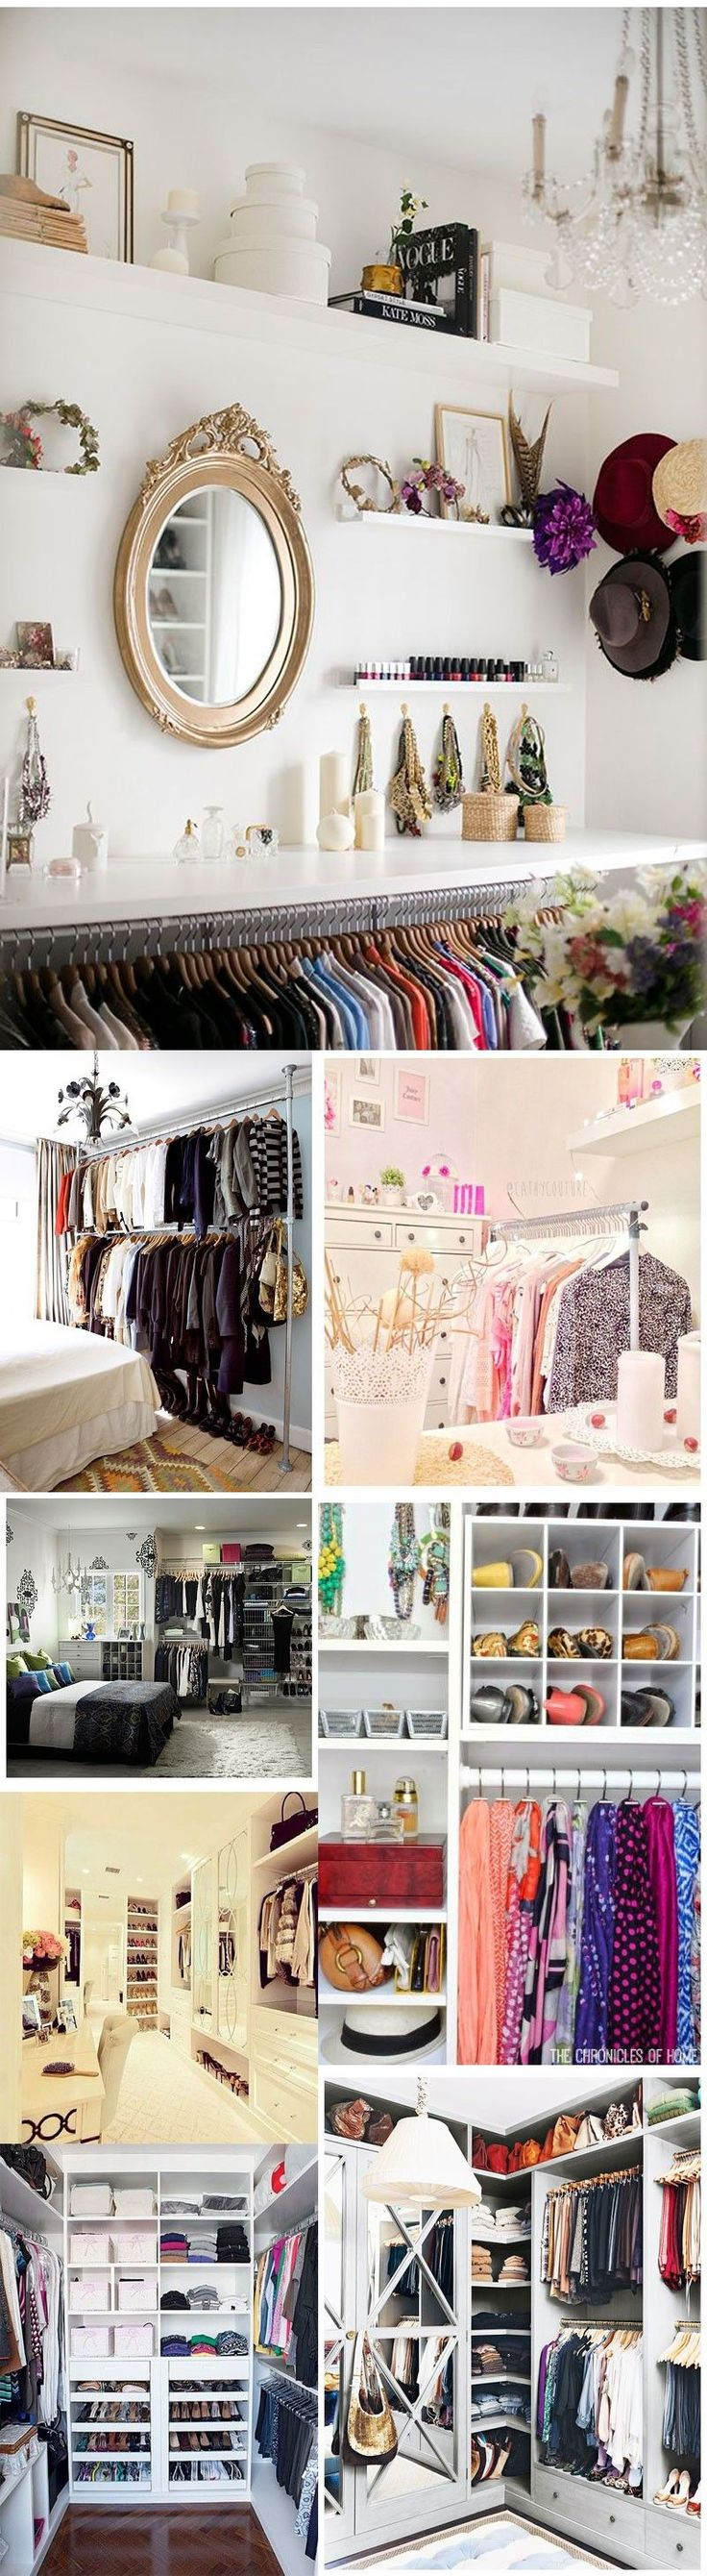 best for the home images on pinterest good ideas home ideas